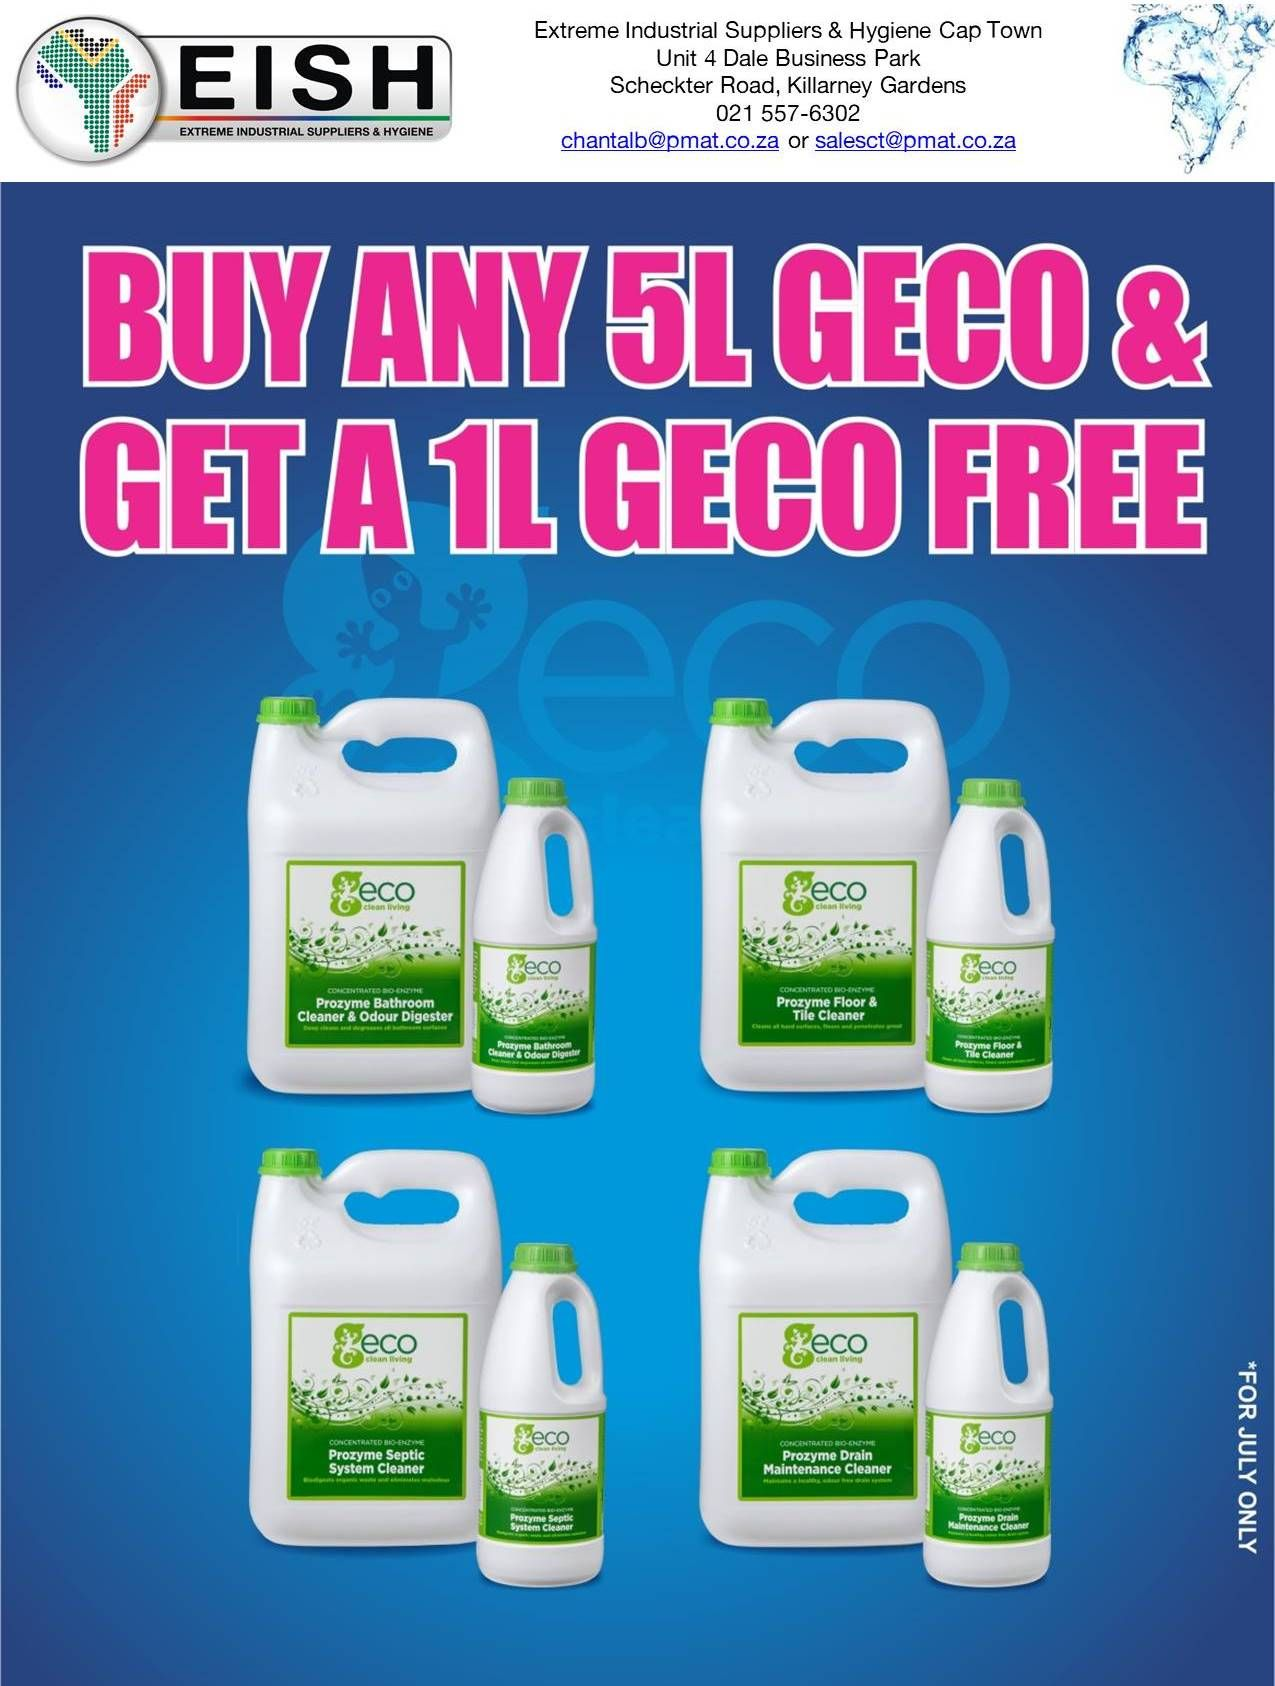 JULY SPECIALS (DUX & GECO) Cape Town branch only 021 557-6302 ...